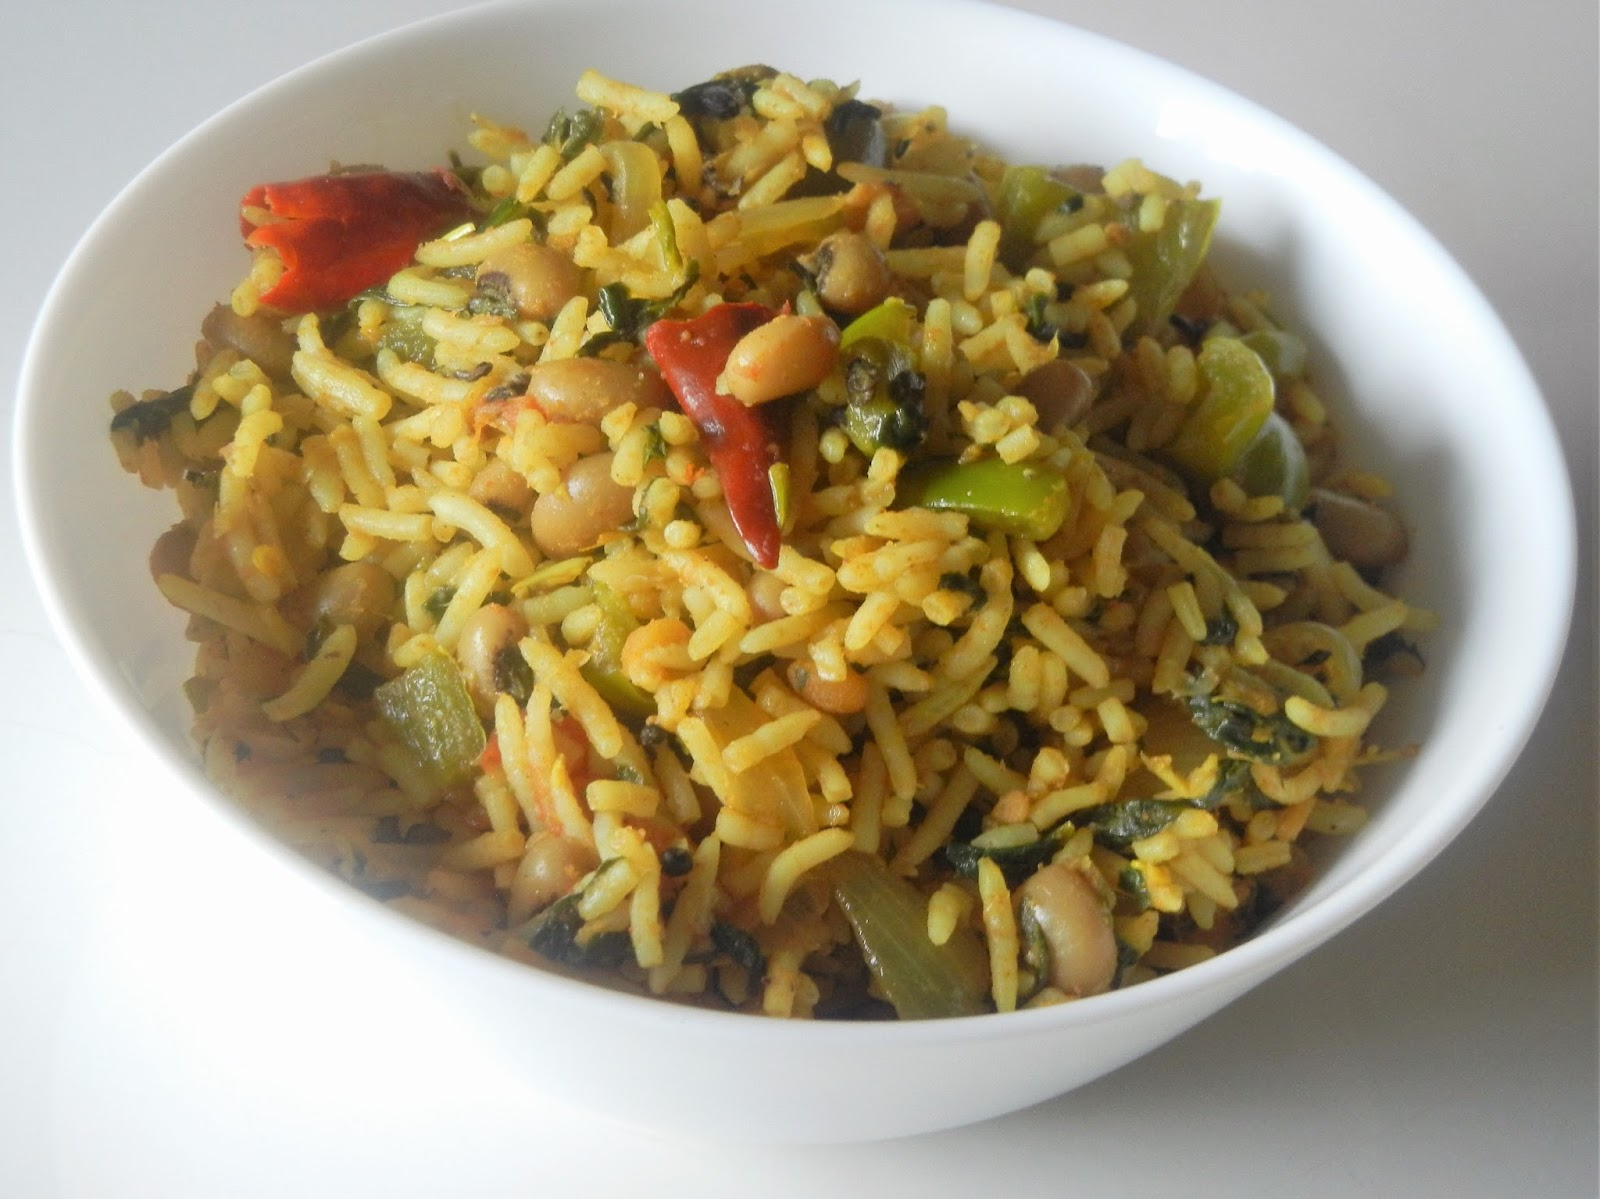 Gitas kitchen a blog for indian diabetic recipes and healthy recipes spinach and black eyed peas tomato rice forumfinder